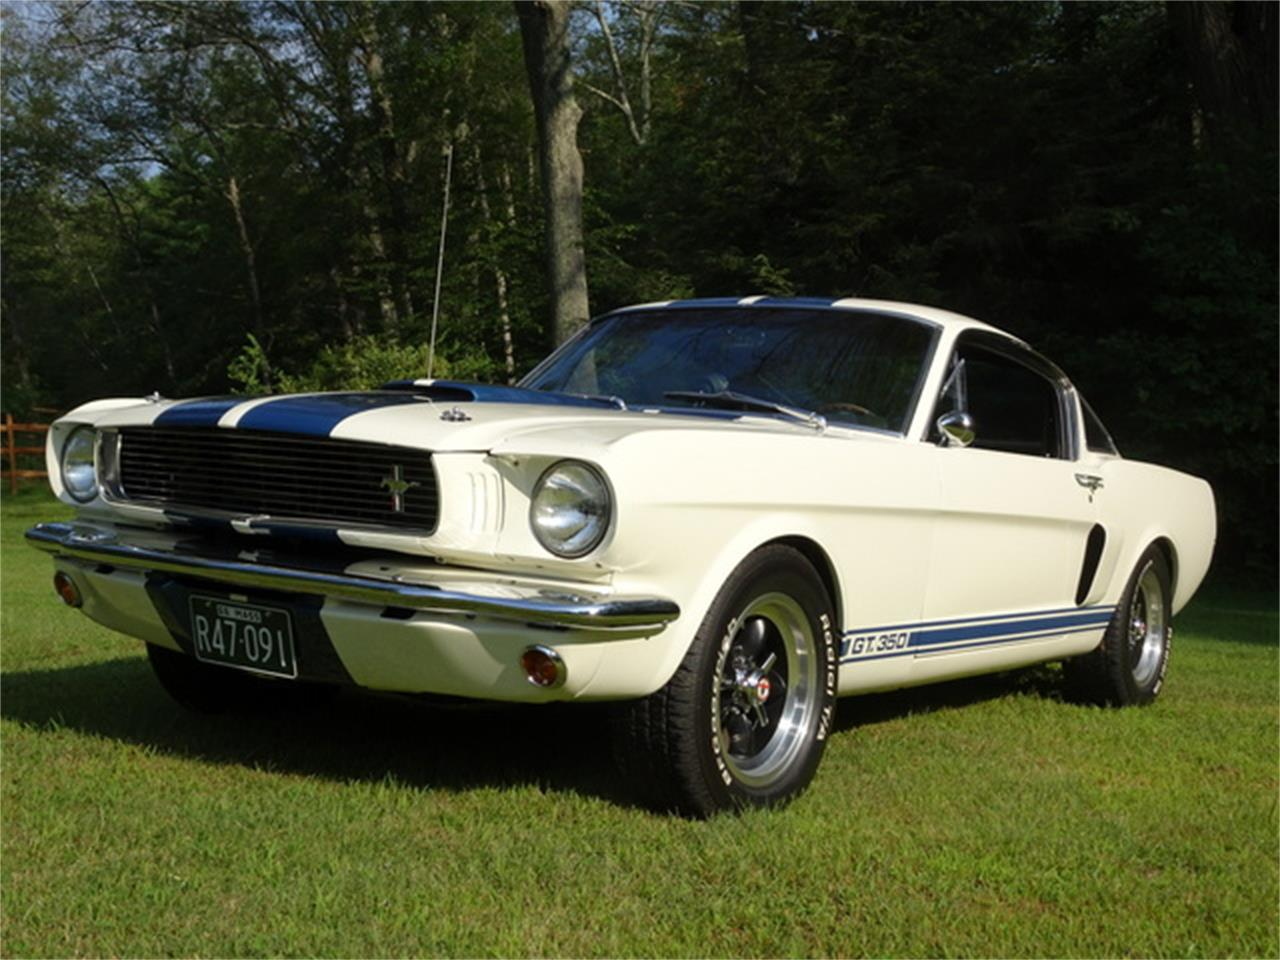 Large picture of 65 gt350 ozs2